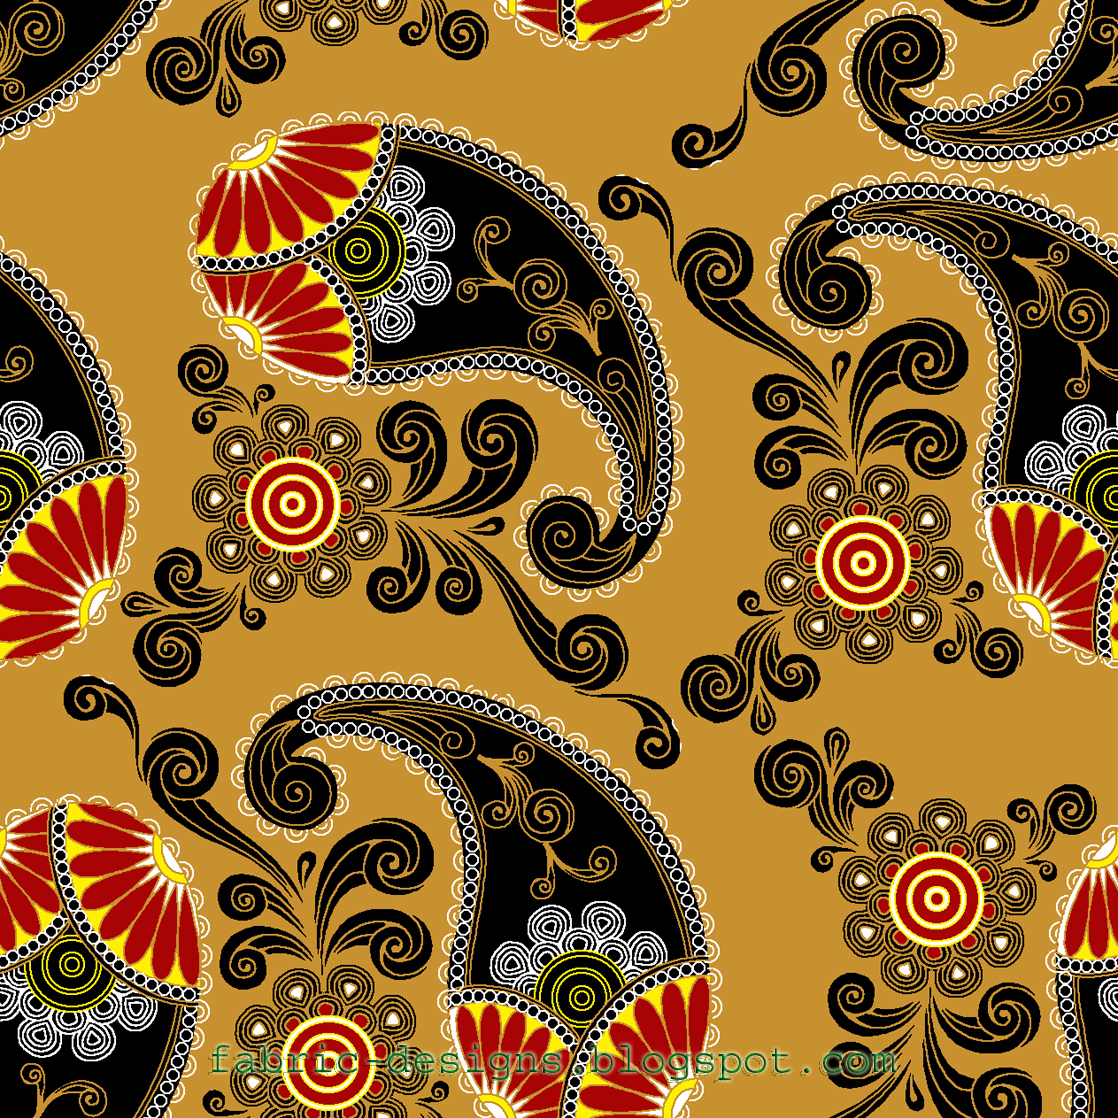 Fabric designs patterns textile patterns royalty free for Fabric pattern